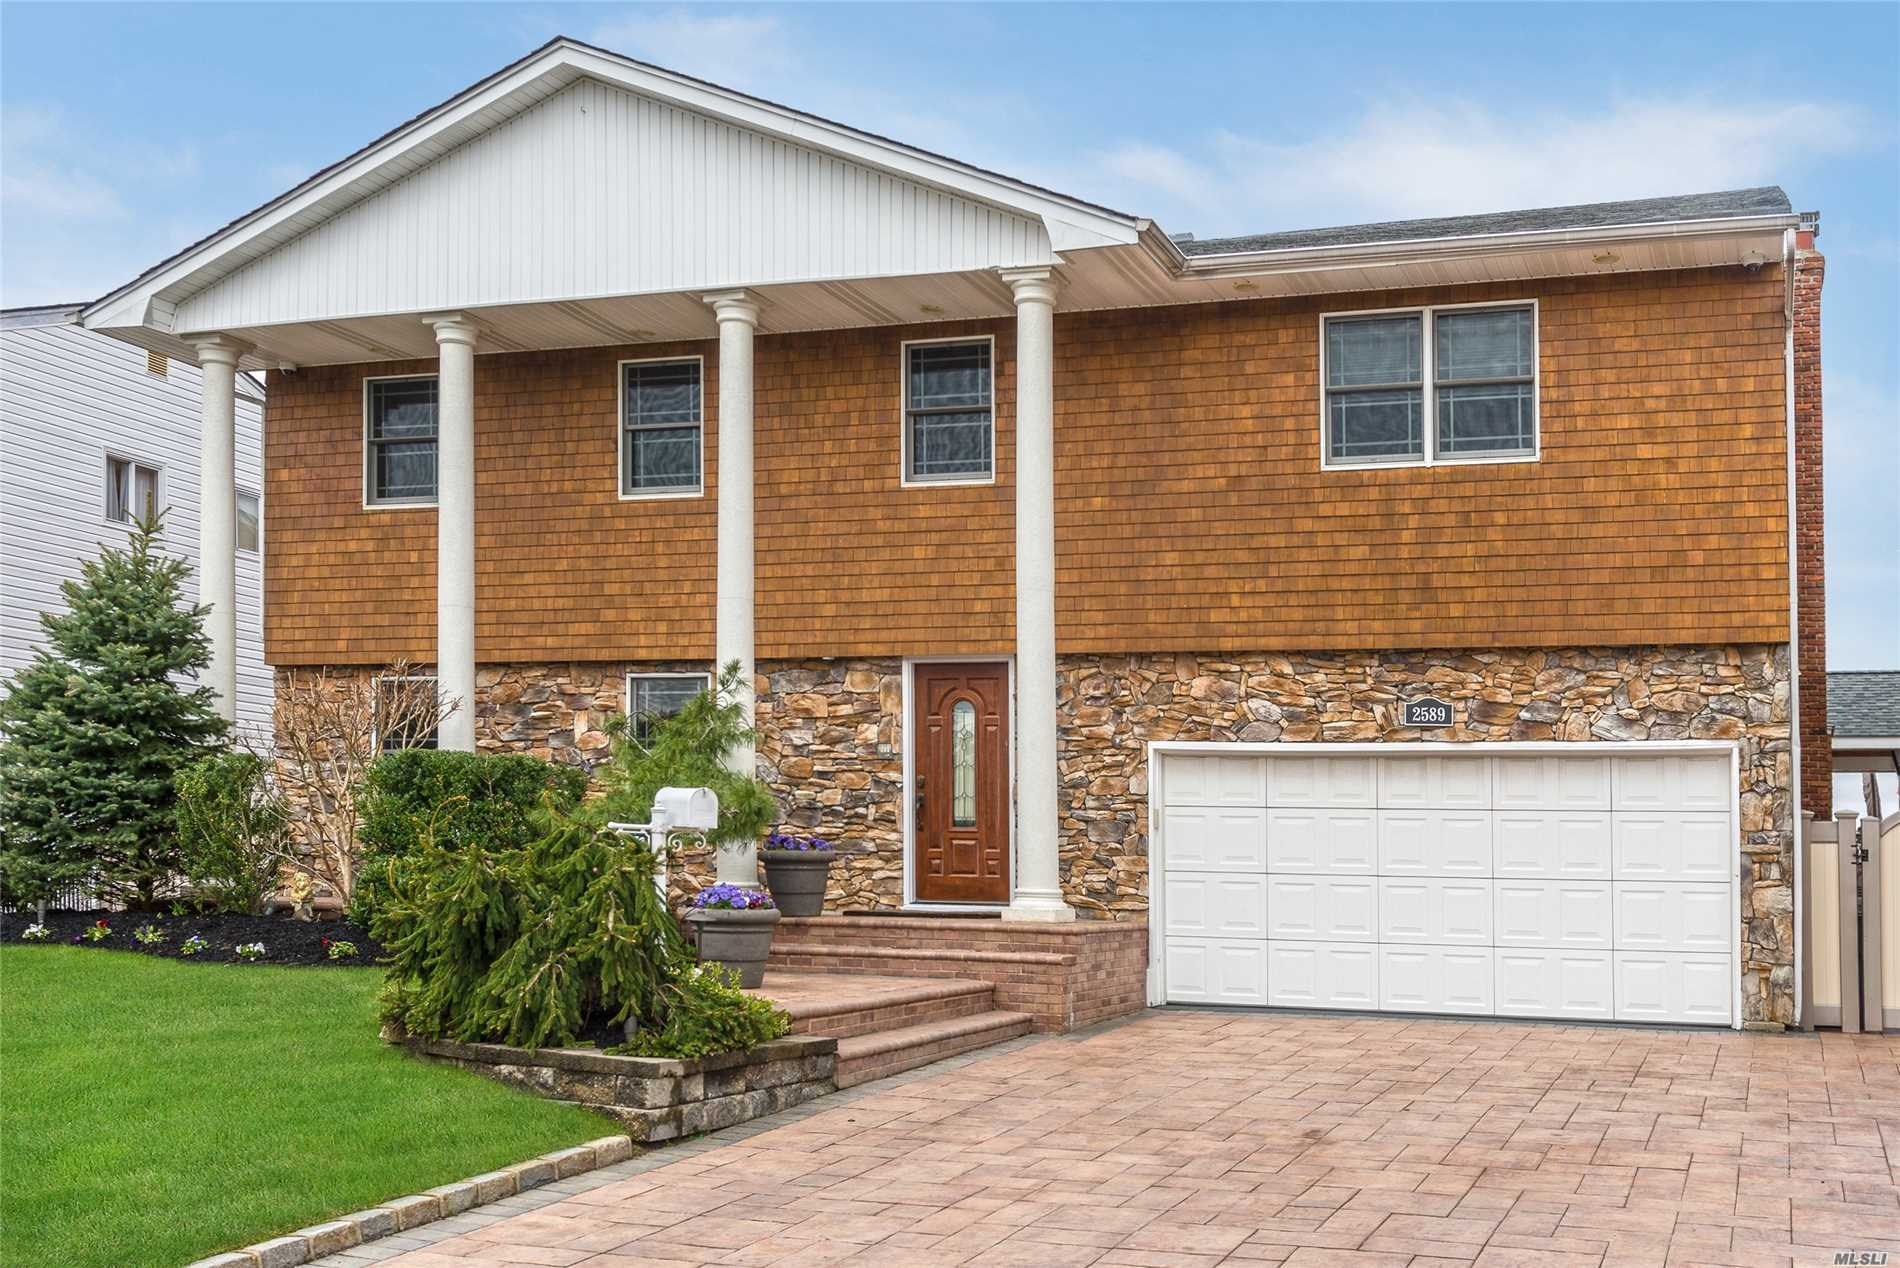 2589 Glenn Dr - Bellmore, New York